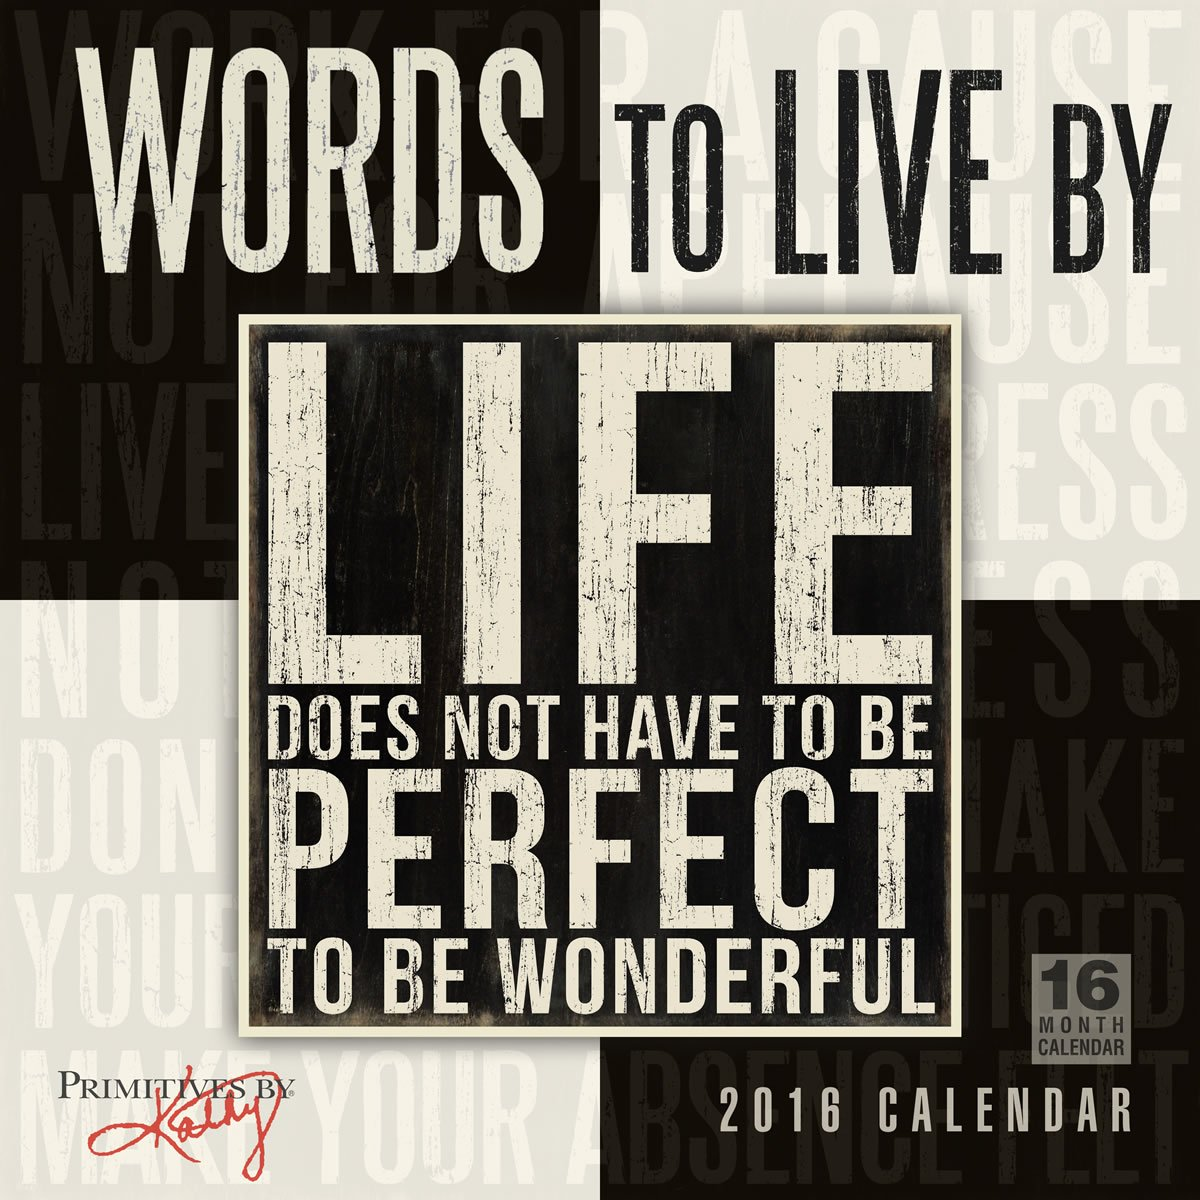 Words to Live By 2016 Wall Calendar: Kathy/Primitives by Kathy Phillips:  9781416297819: Amazon.com: Books